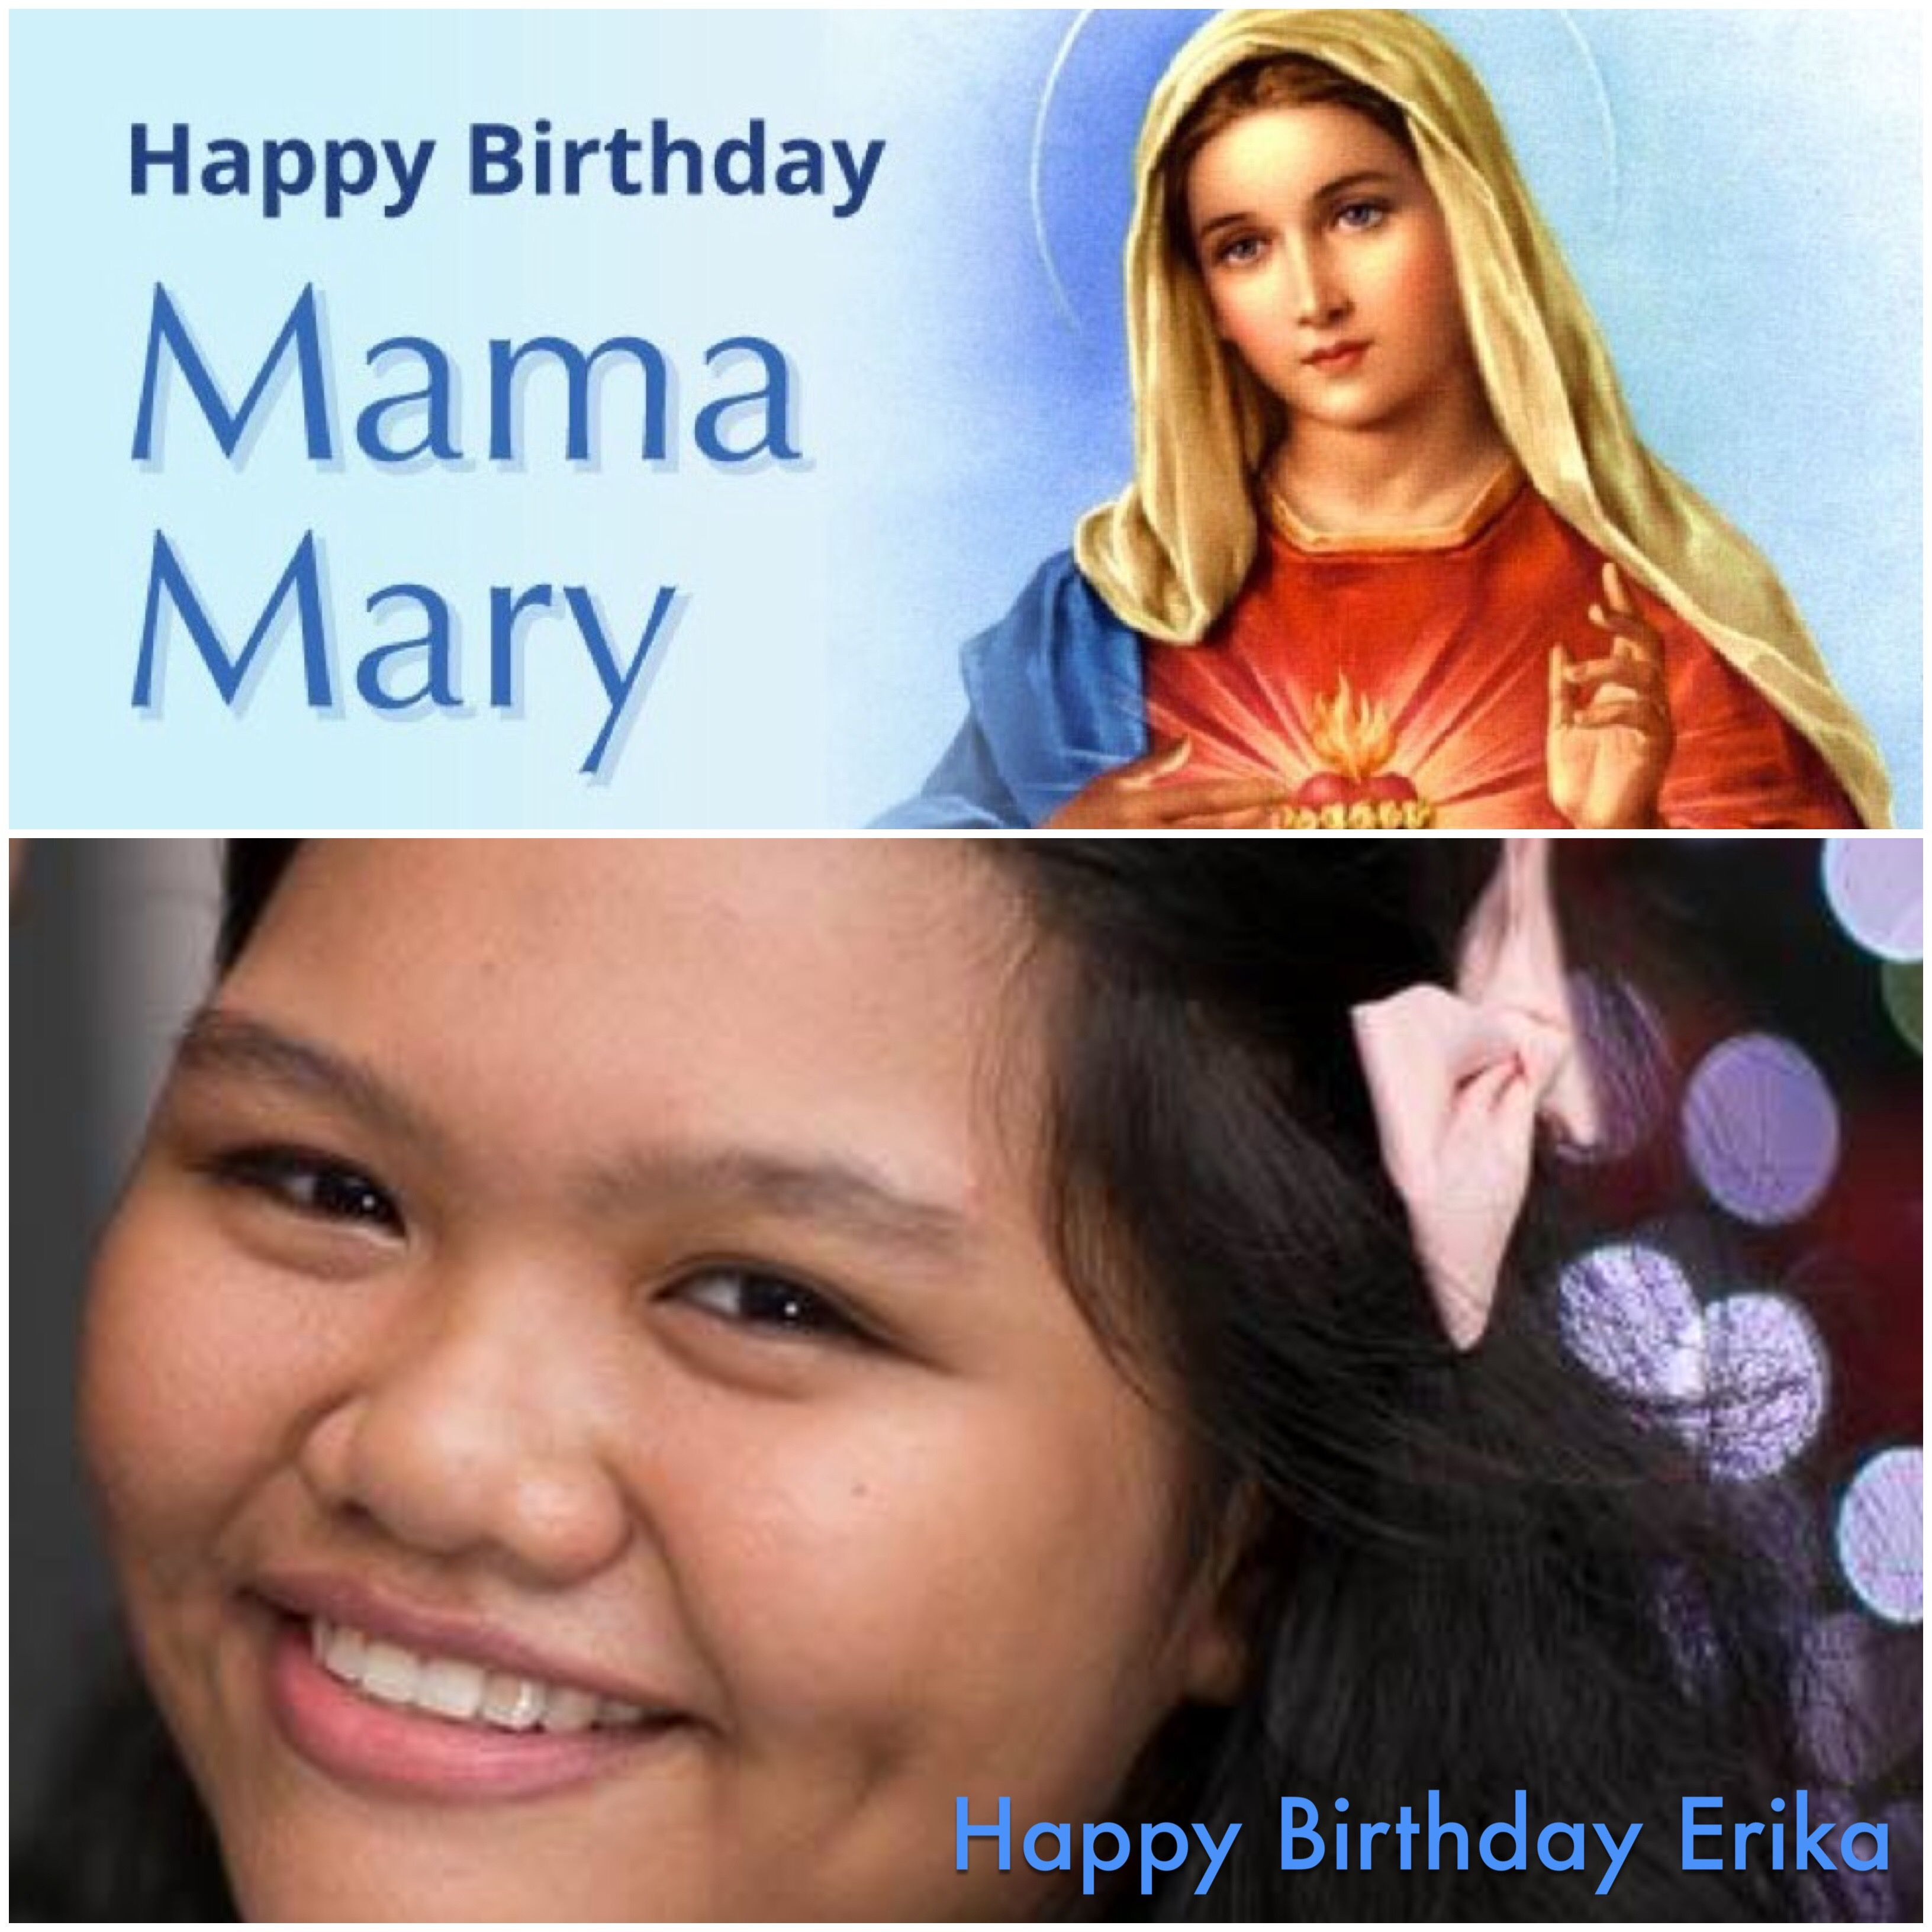 Happy Birthday, Mama Mary! Happy Birthday, Erika! May all